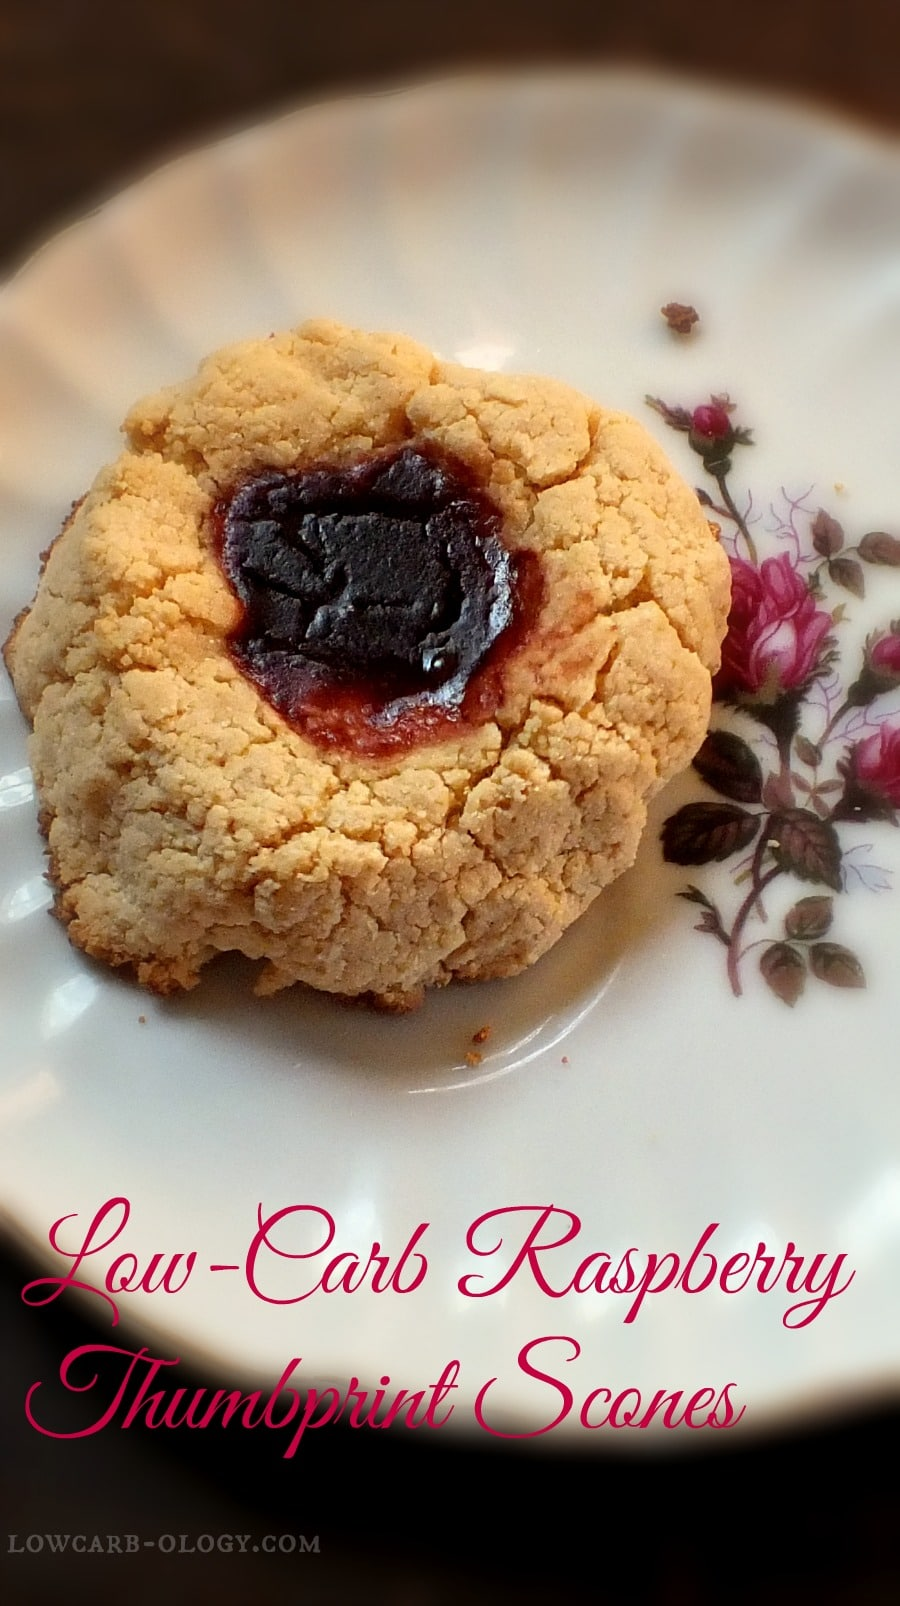 low-carb raspberry thumbprint scones similar to the high carb ones Starbucks used to have|lowcarb-ology.com